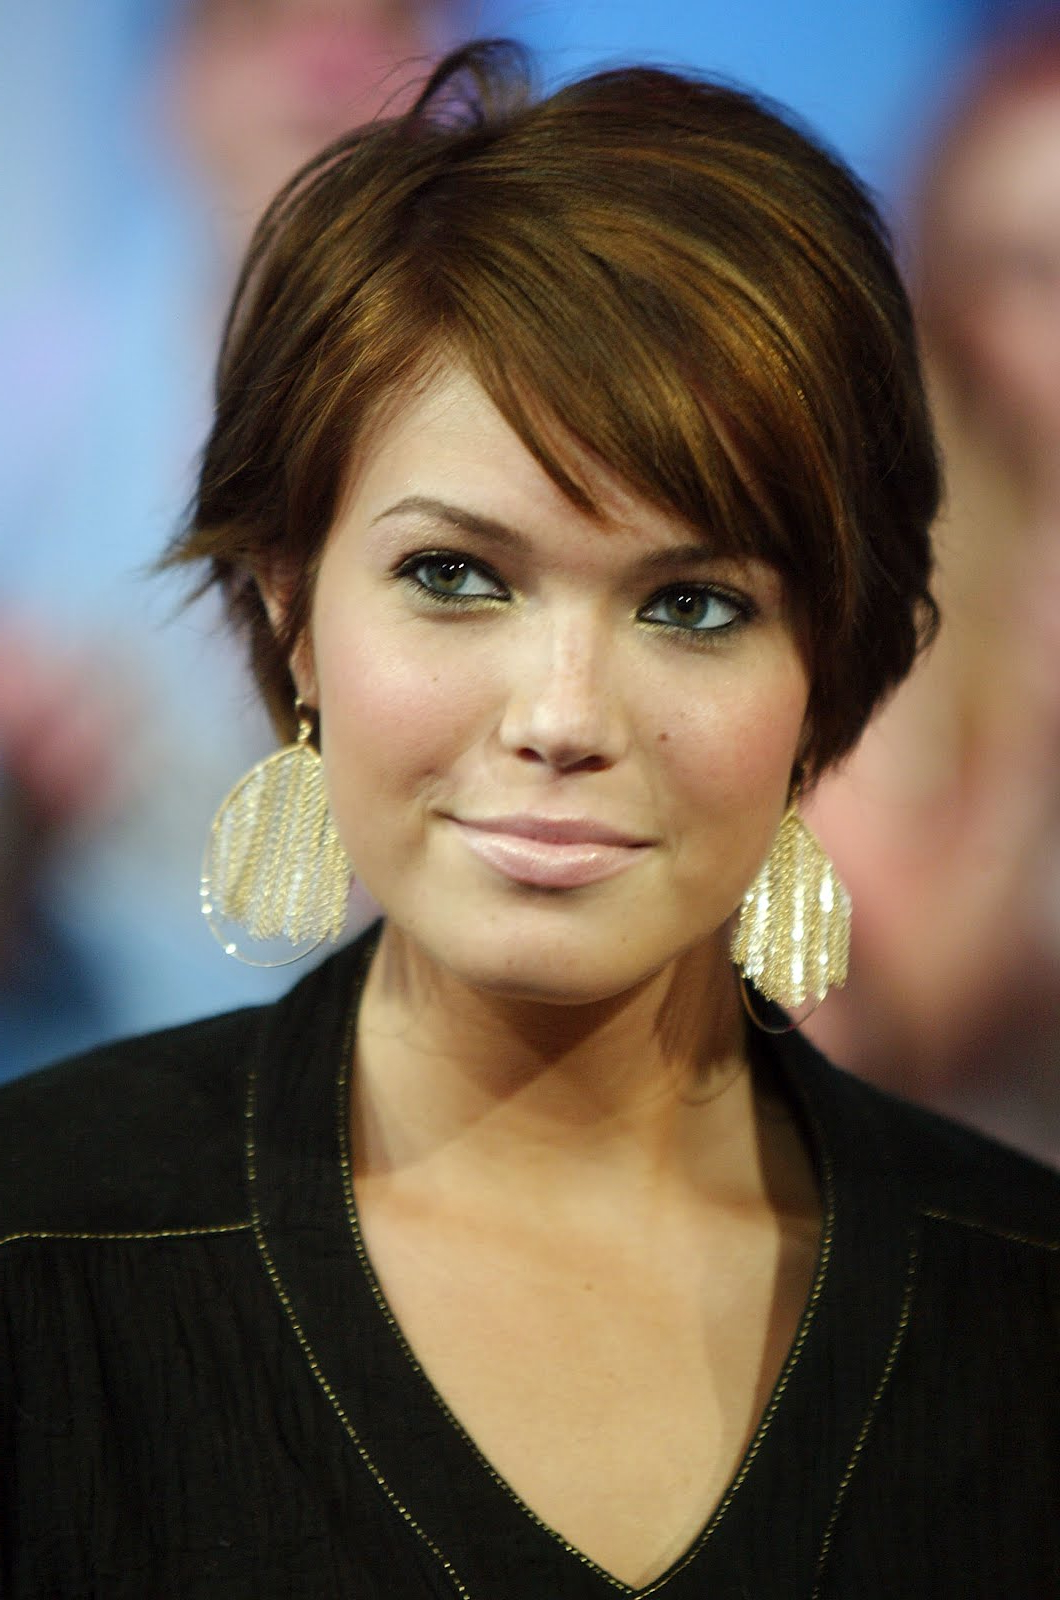 30 Gorgeous Short Haircuts For Round Faces In Edgy Short Hairstyles For Round Faces (View 9 of 25)